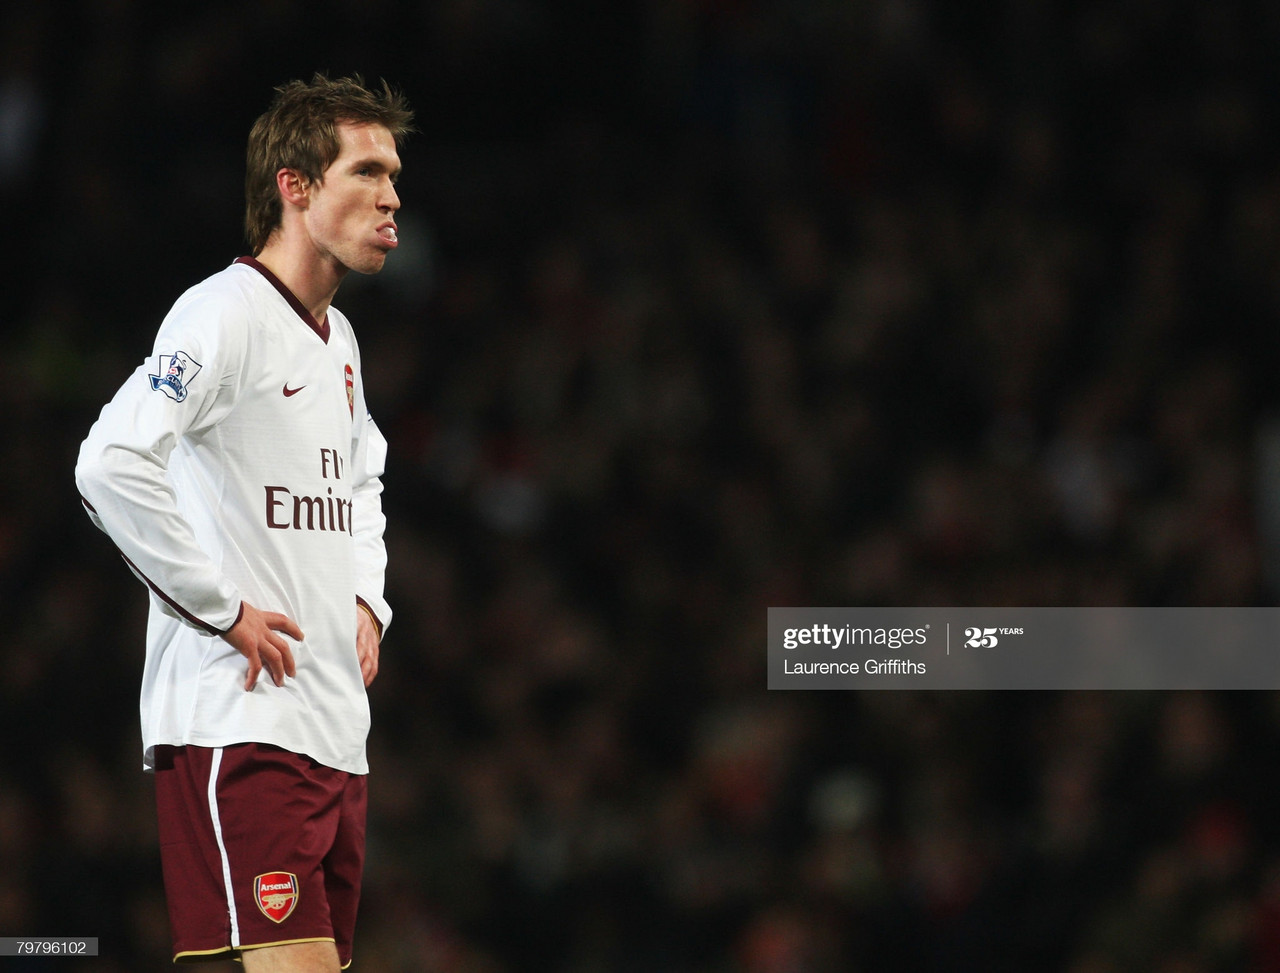 MANCHESTER, UNITED KINGDOM - FEBRUARY 16: Aleksandr Hleb of Arsenal looks dejected during the FA Cup sponsored by E.ON 5th Round match between Manchester United and Arsenal at Old Trafford on February 16, 2008 in Manchester, England. (Photo by Laurence Griffiths/Getty Images)